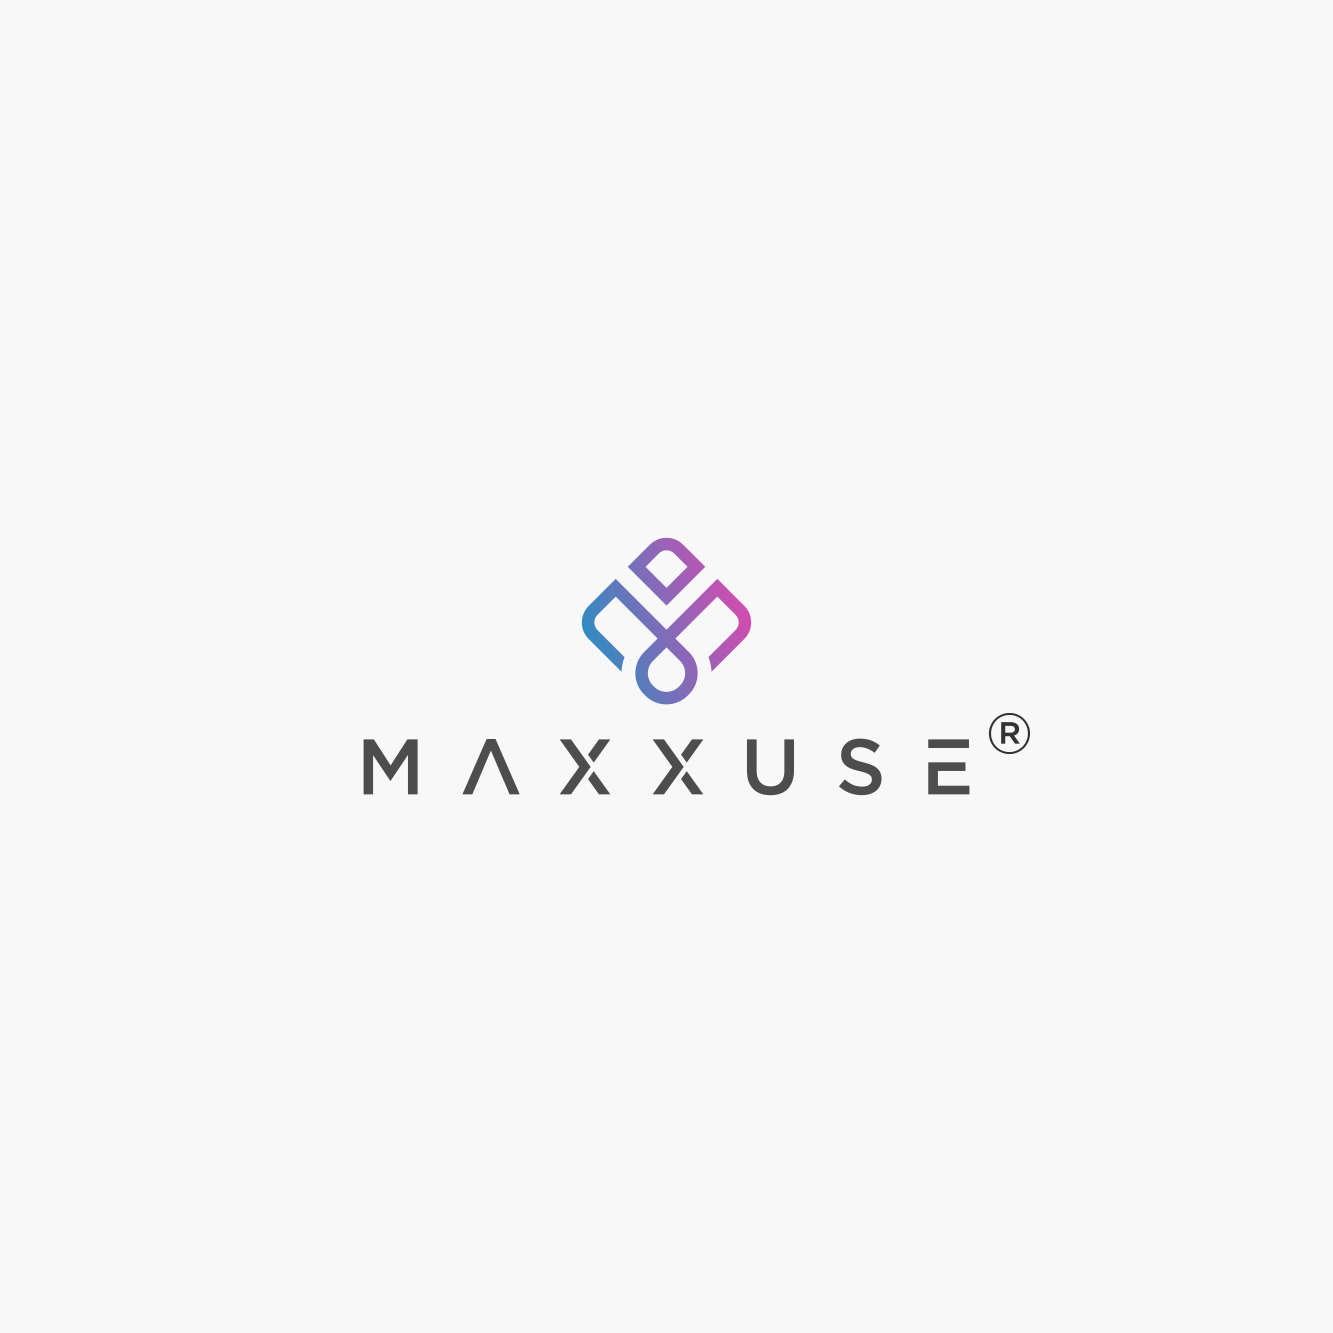 Maxxuse brand needs a professional, innovative and attractive logo.